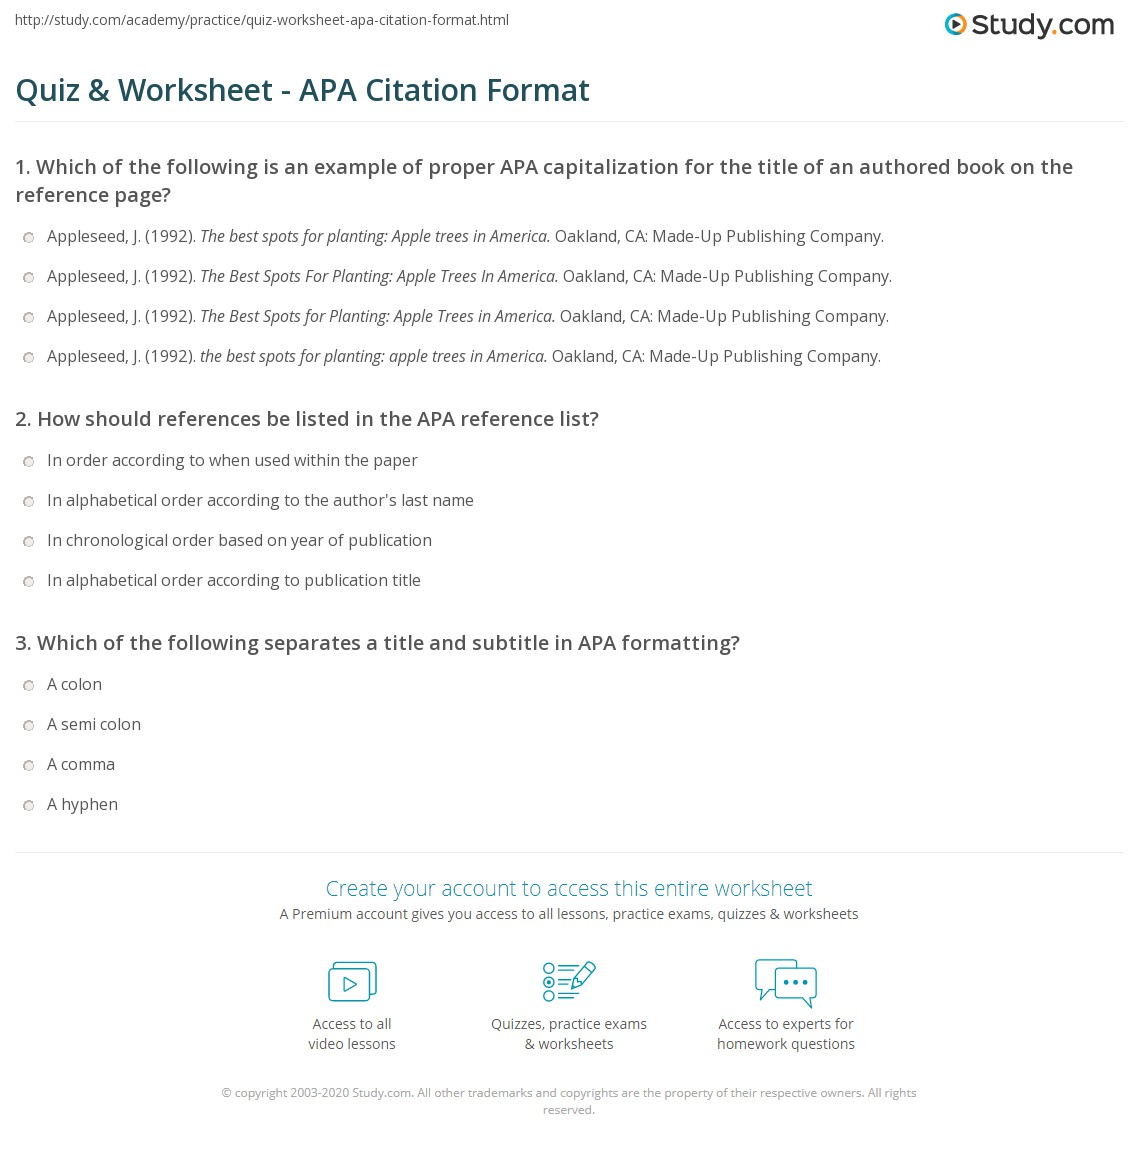 hight resolution of Quiz \u0026 Worksheet - APA Citation Format   Study.com